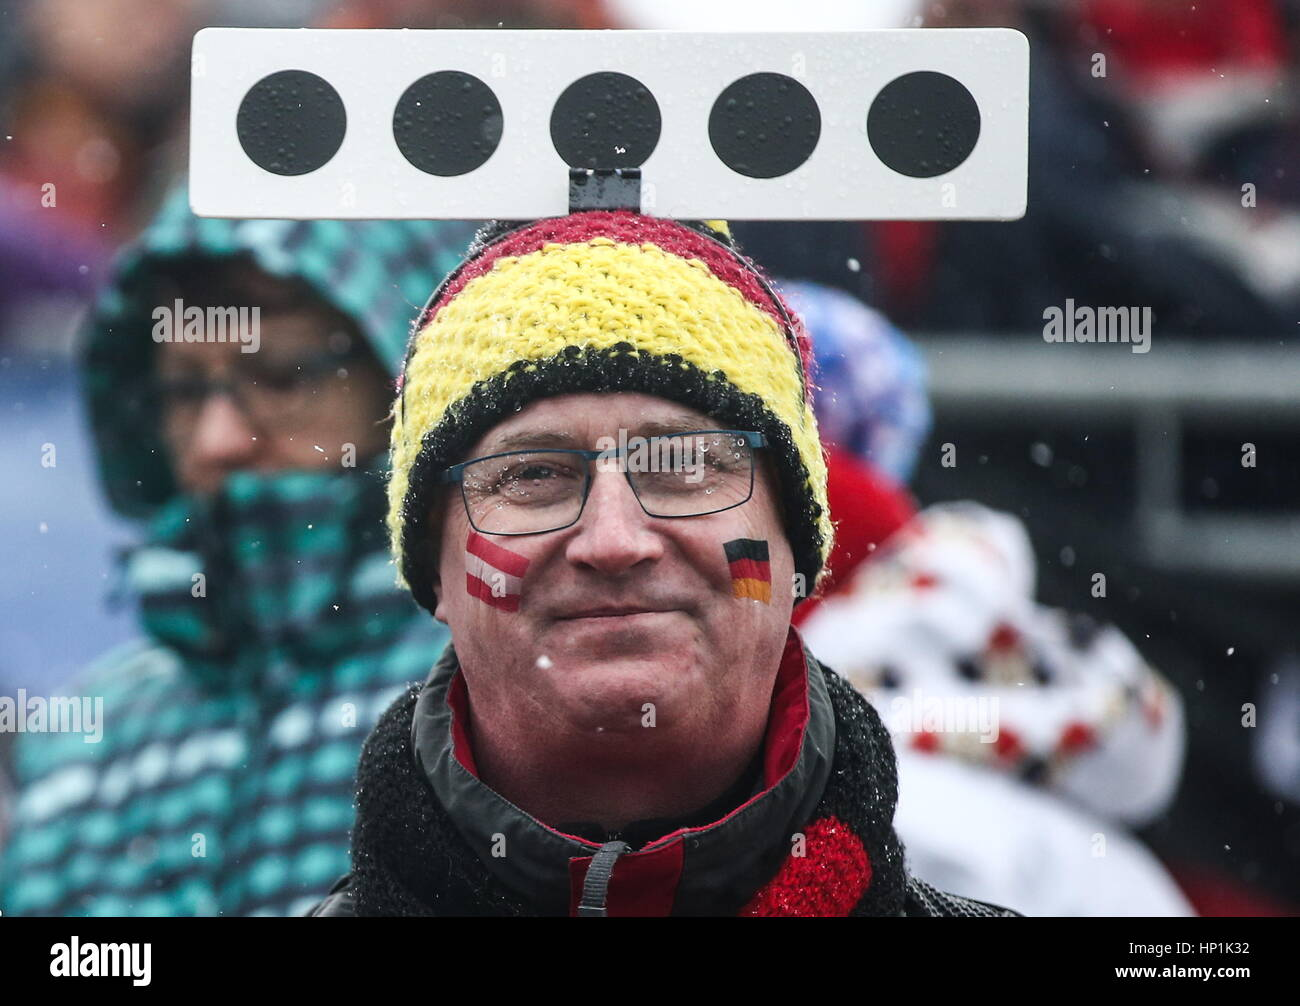 Hochfilzen, Austria. 17th Feb, 2017. A fan attends the women's 4x6km relay event at the 2017 IBU Biathlon World - Stock Image